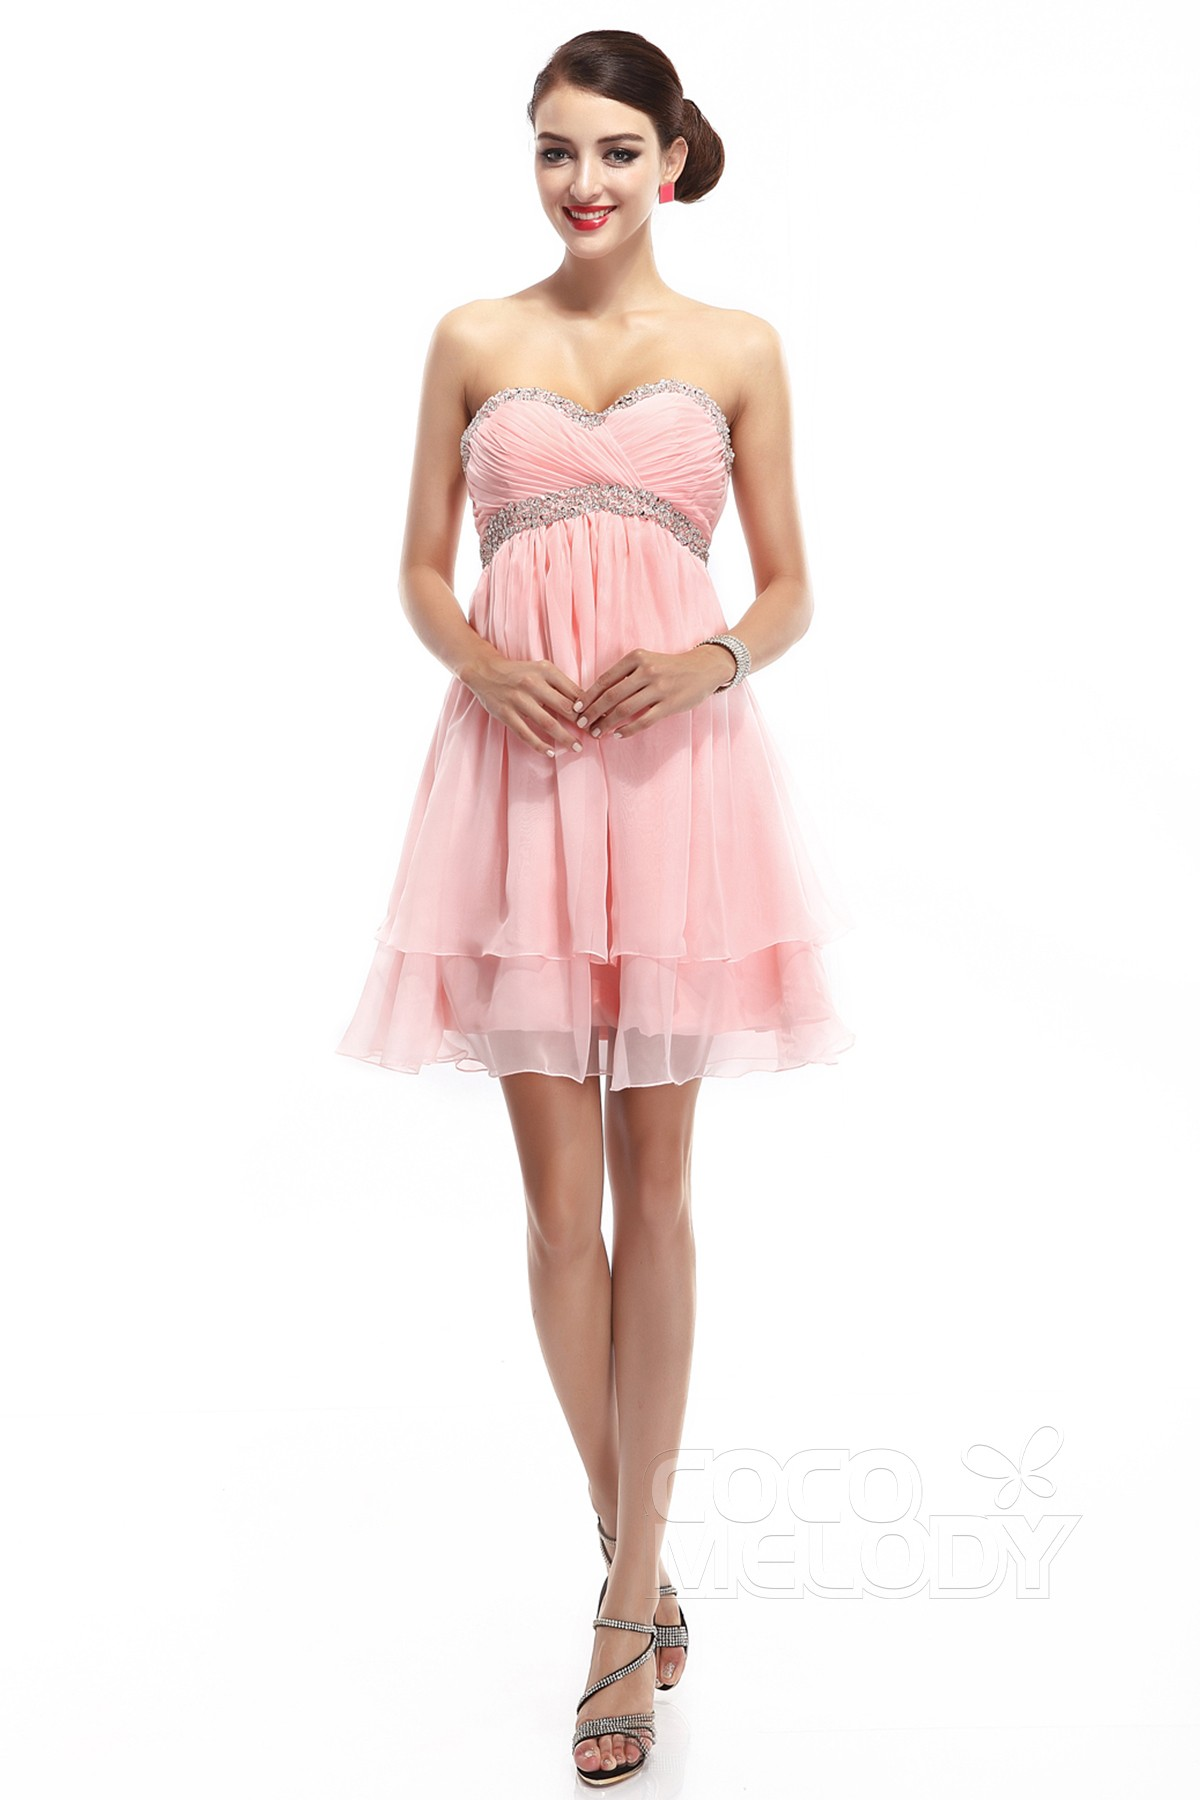 Co elody A Line Sweetheart Empire Short Mini Chiffon Baby Pink